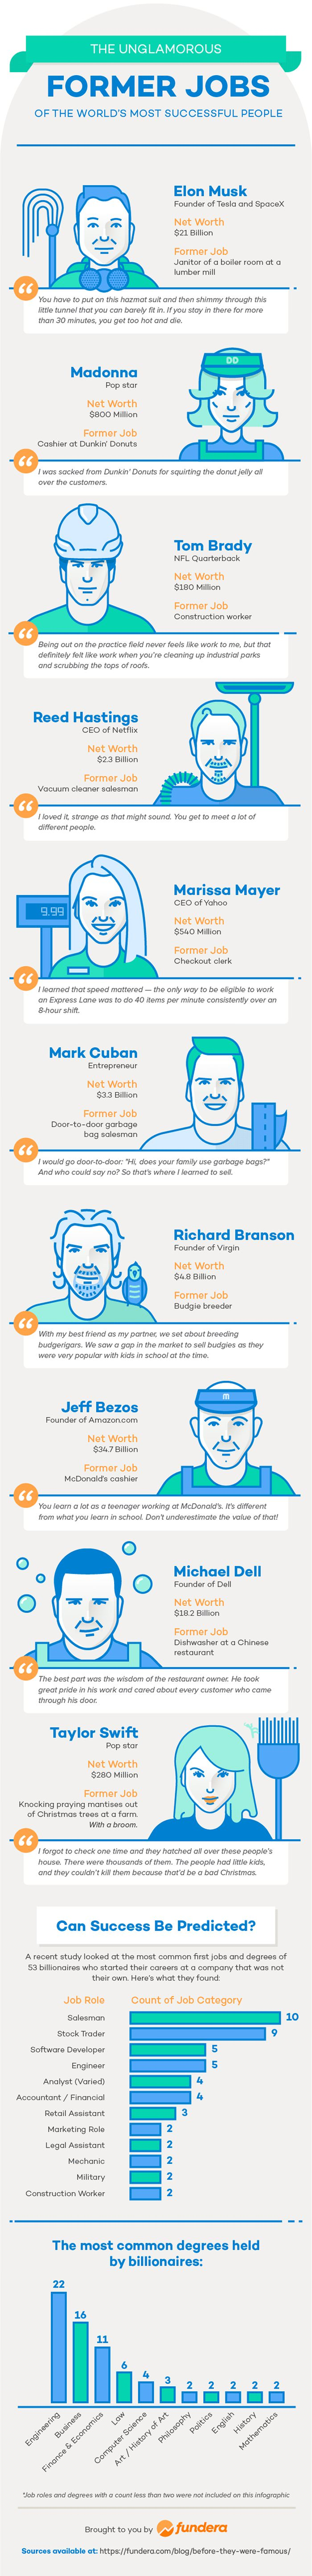 Unglamorous Former Jobs of the World's Most Successful People